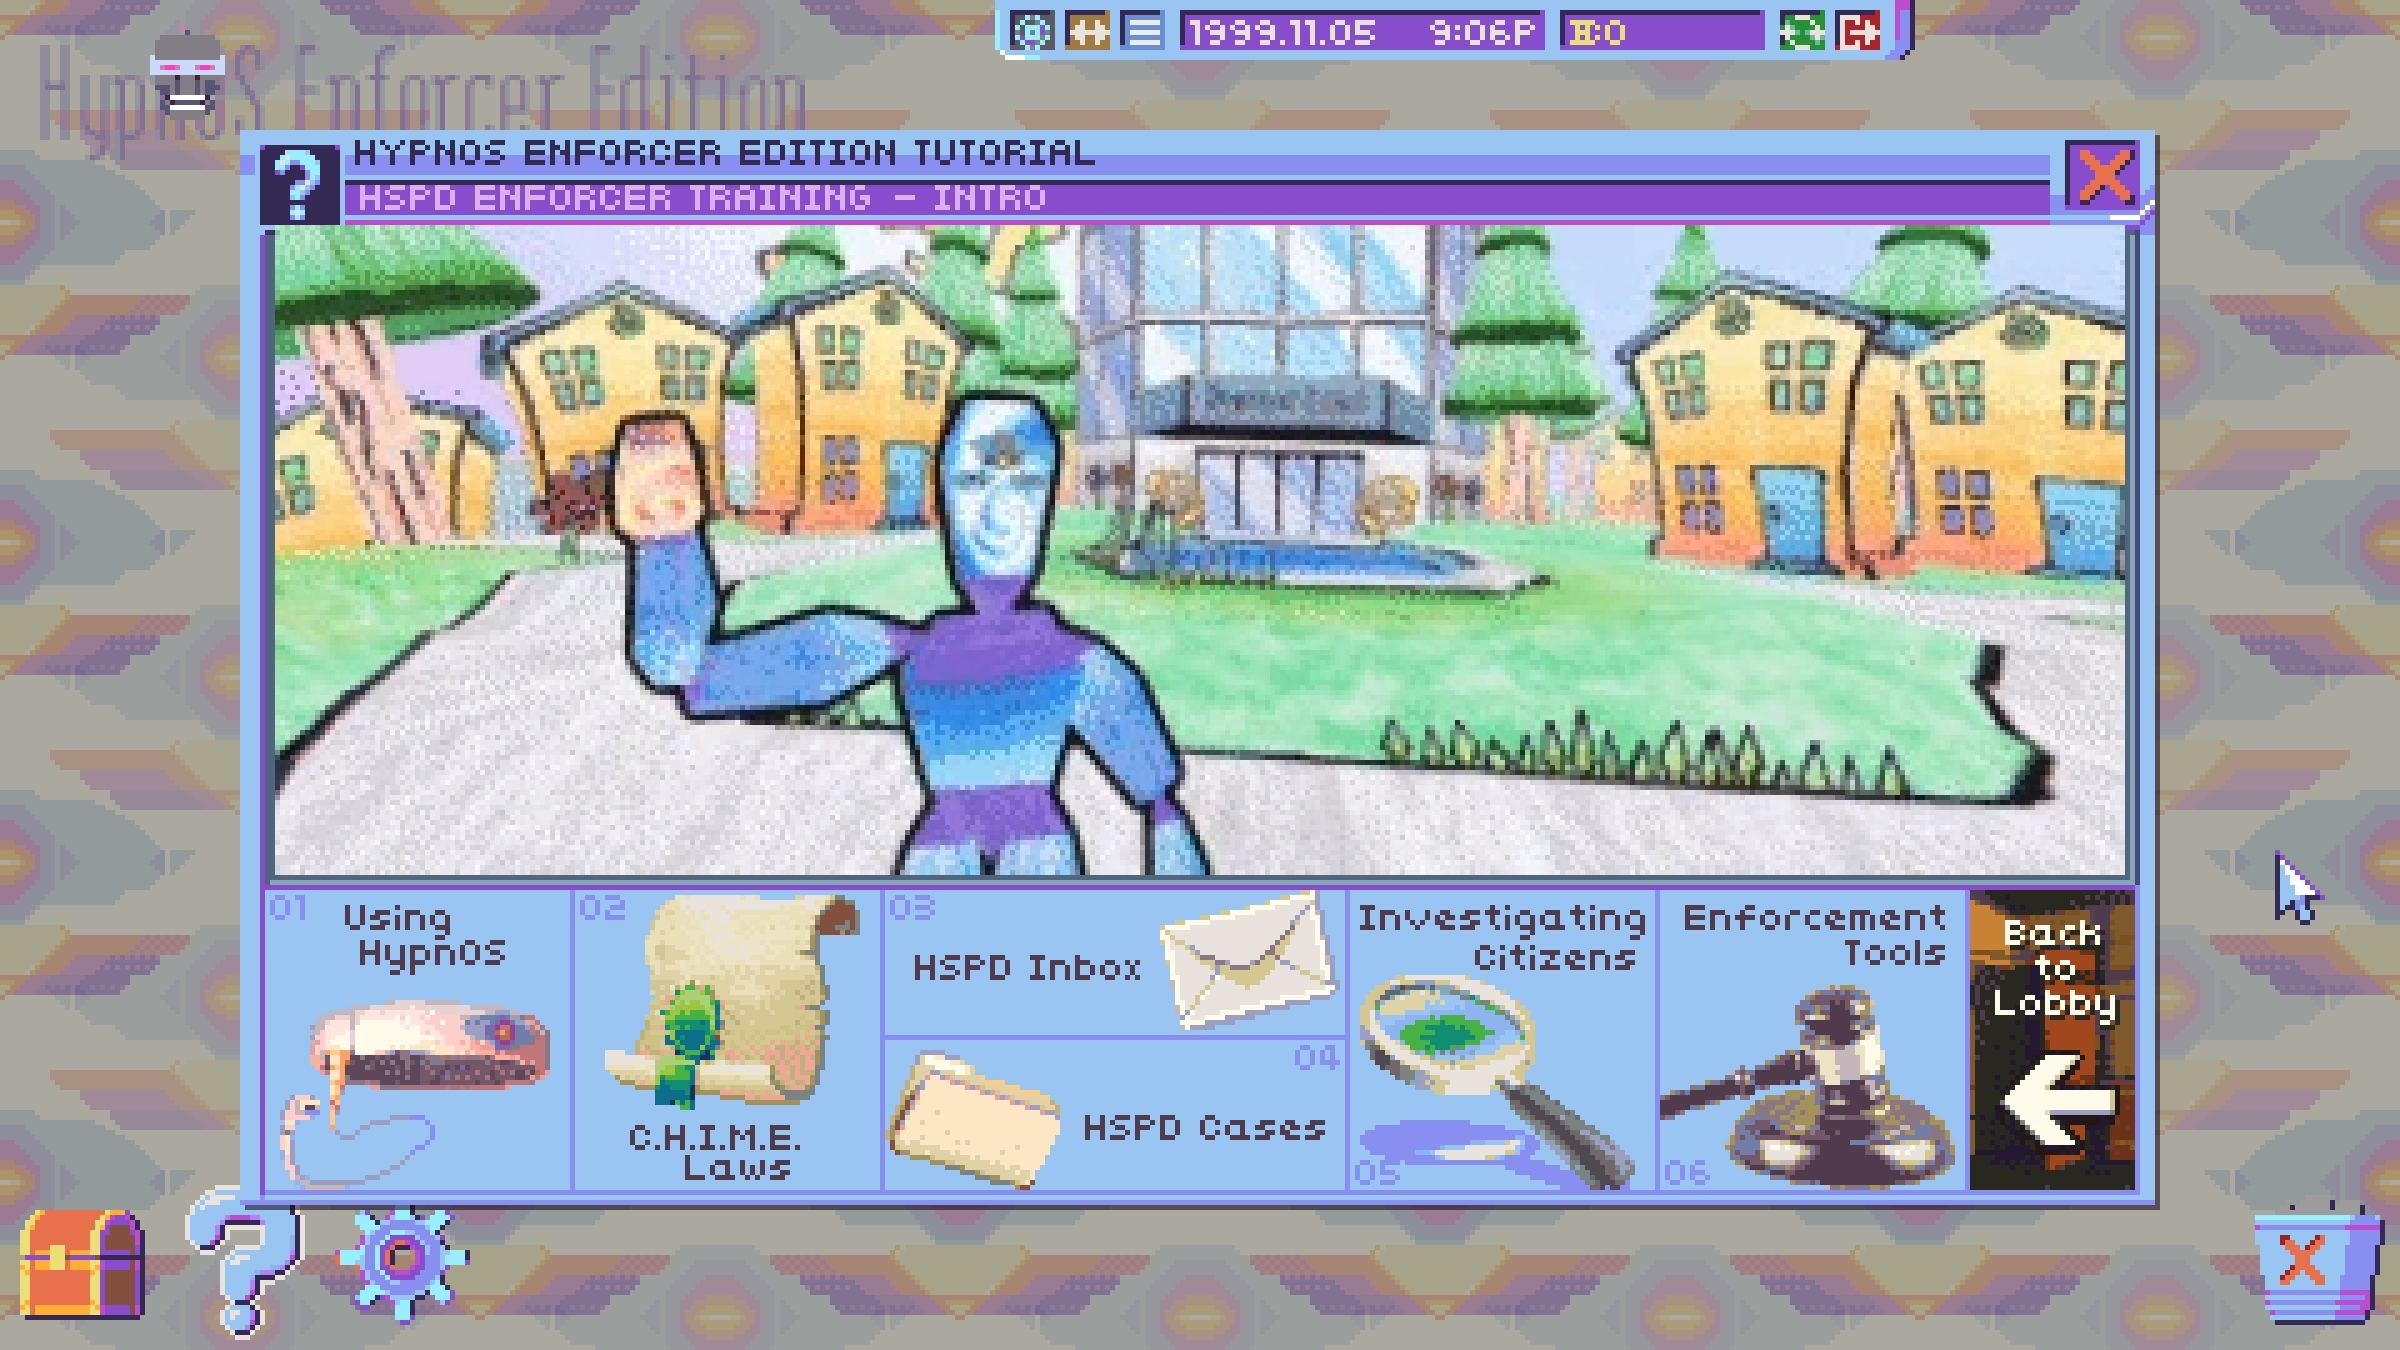 A screenshot showing the Hypnos Enforcer Tutorial teaching you to use your enforcement tools in Hypnospace Outlaw